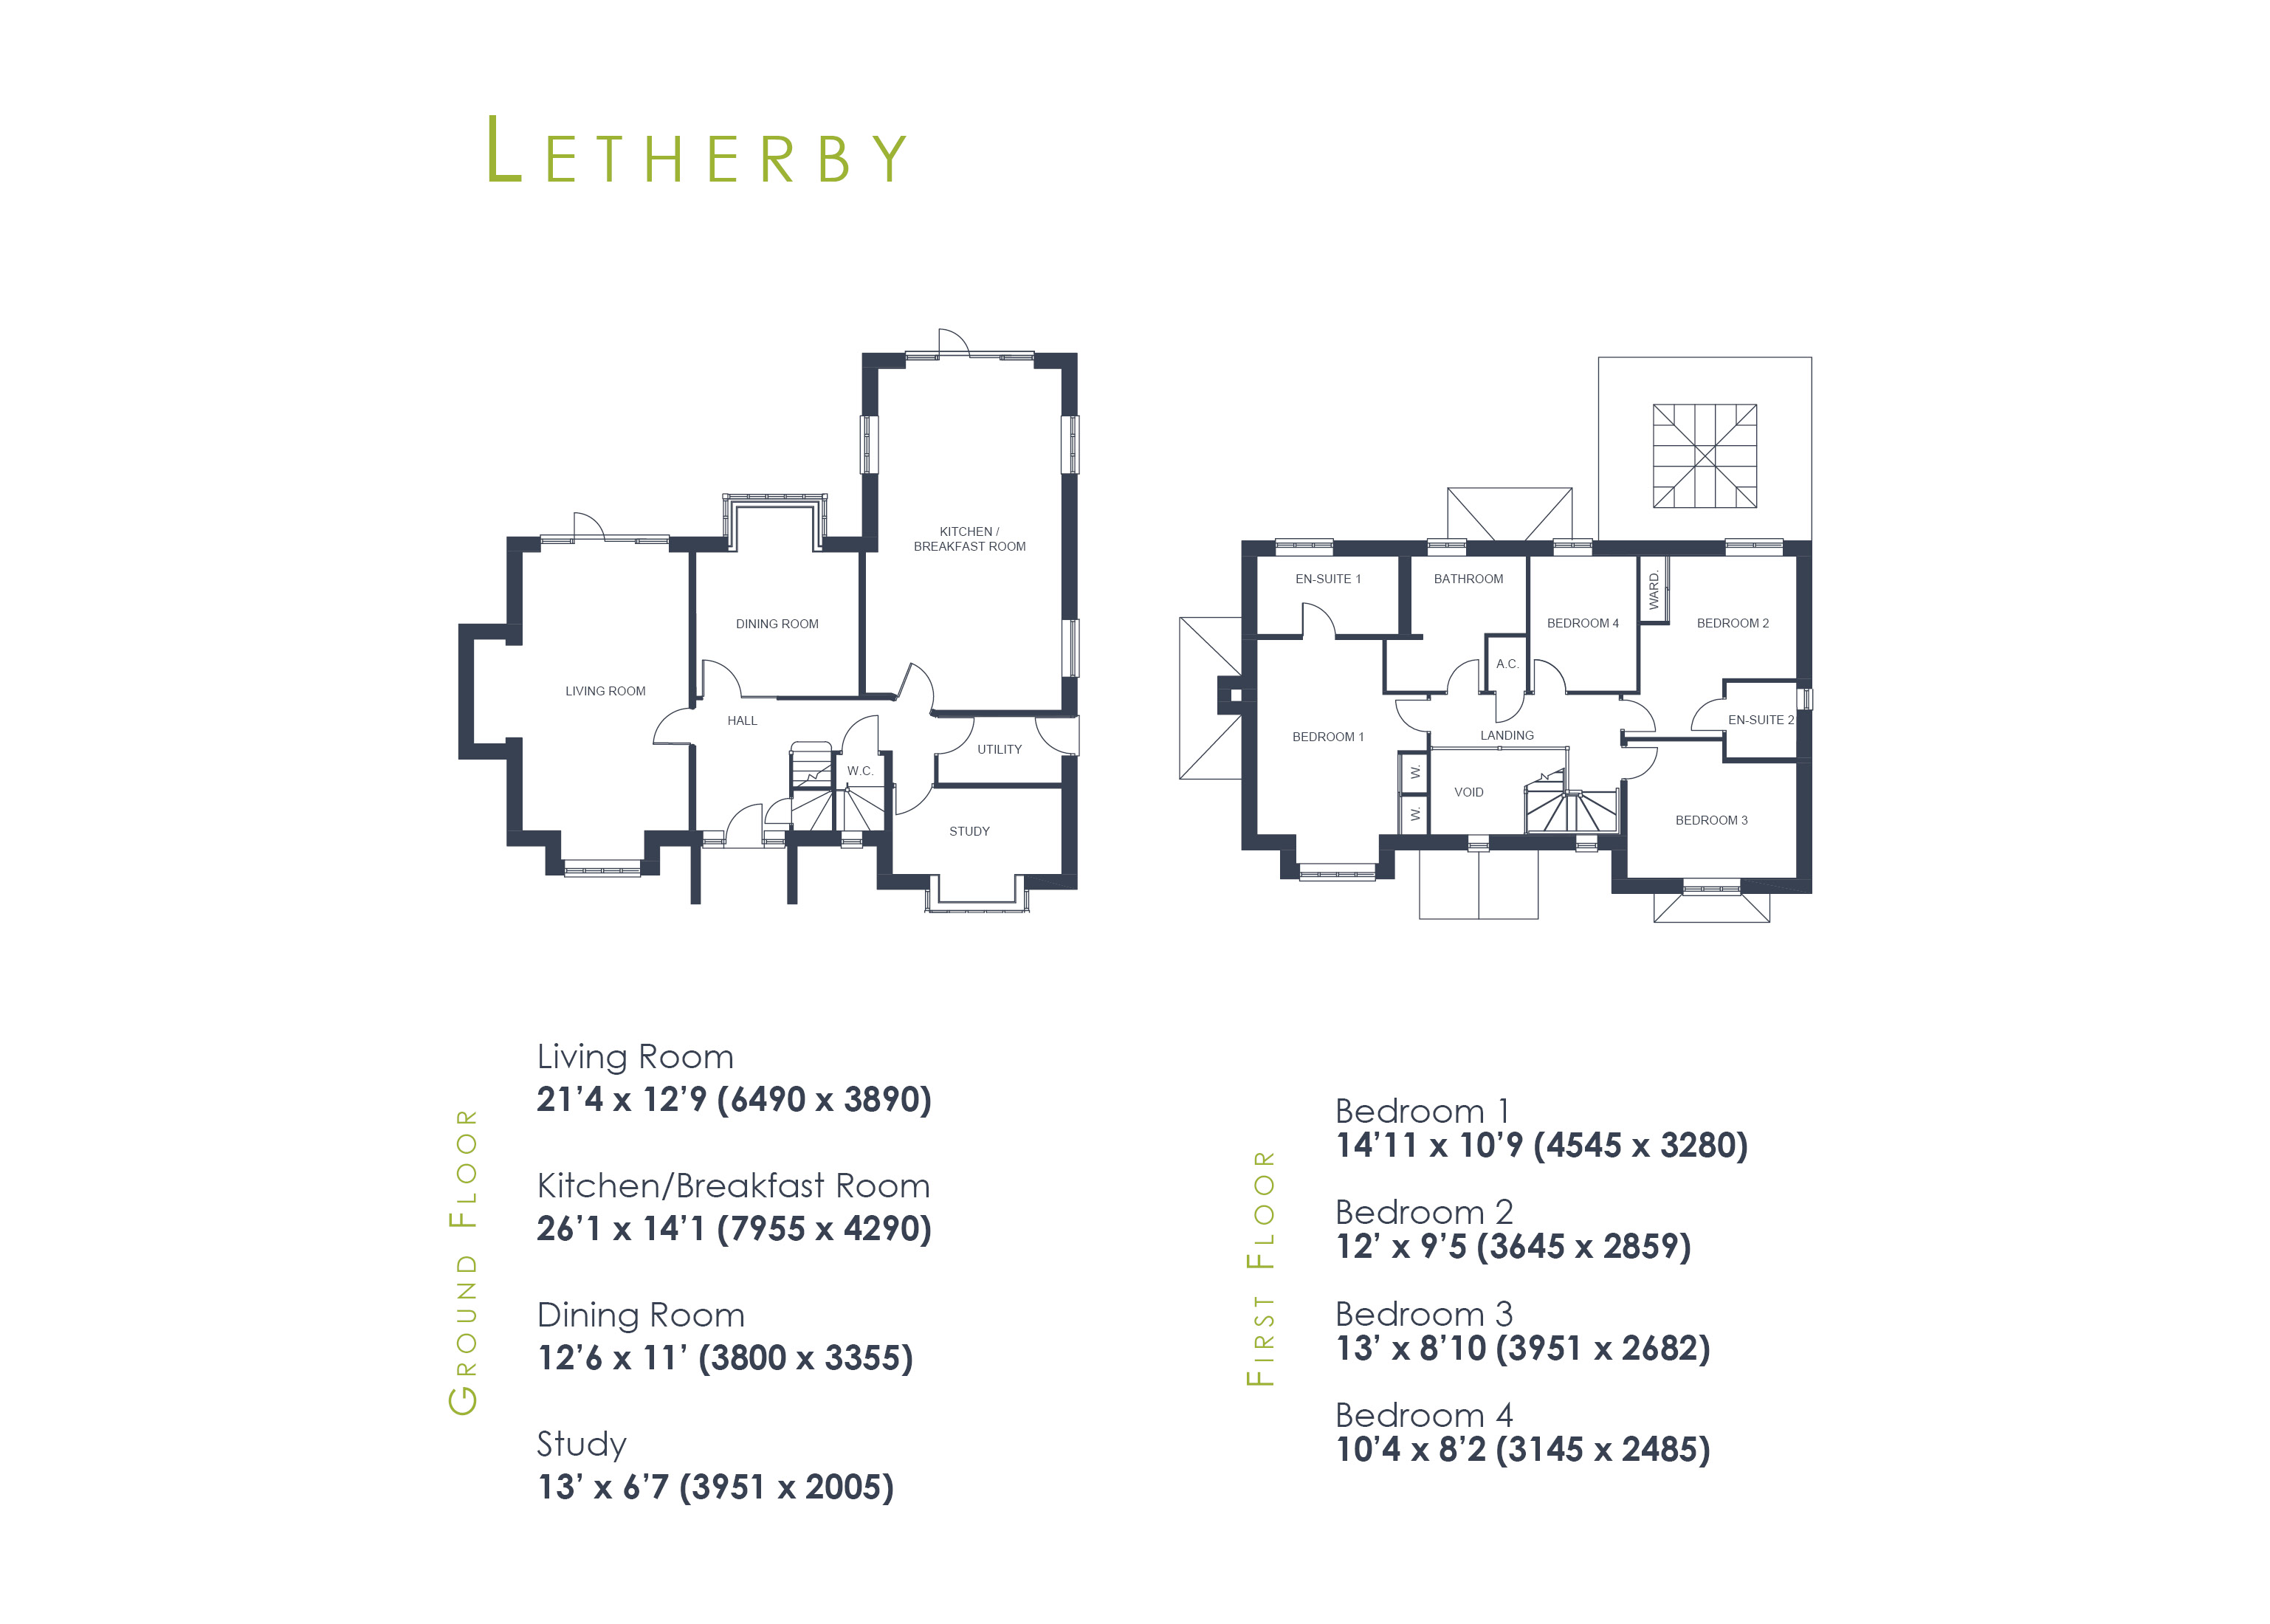 Letherby Floor Plan